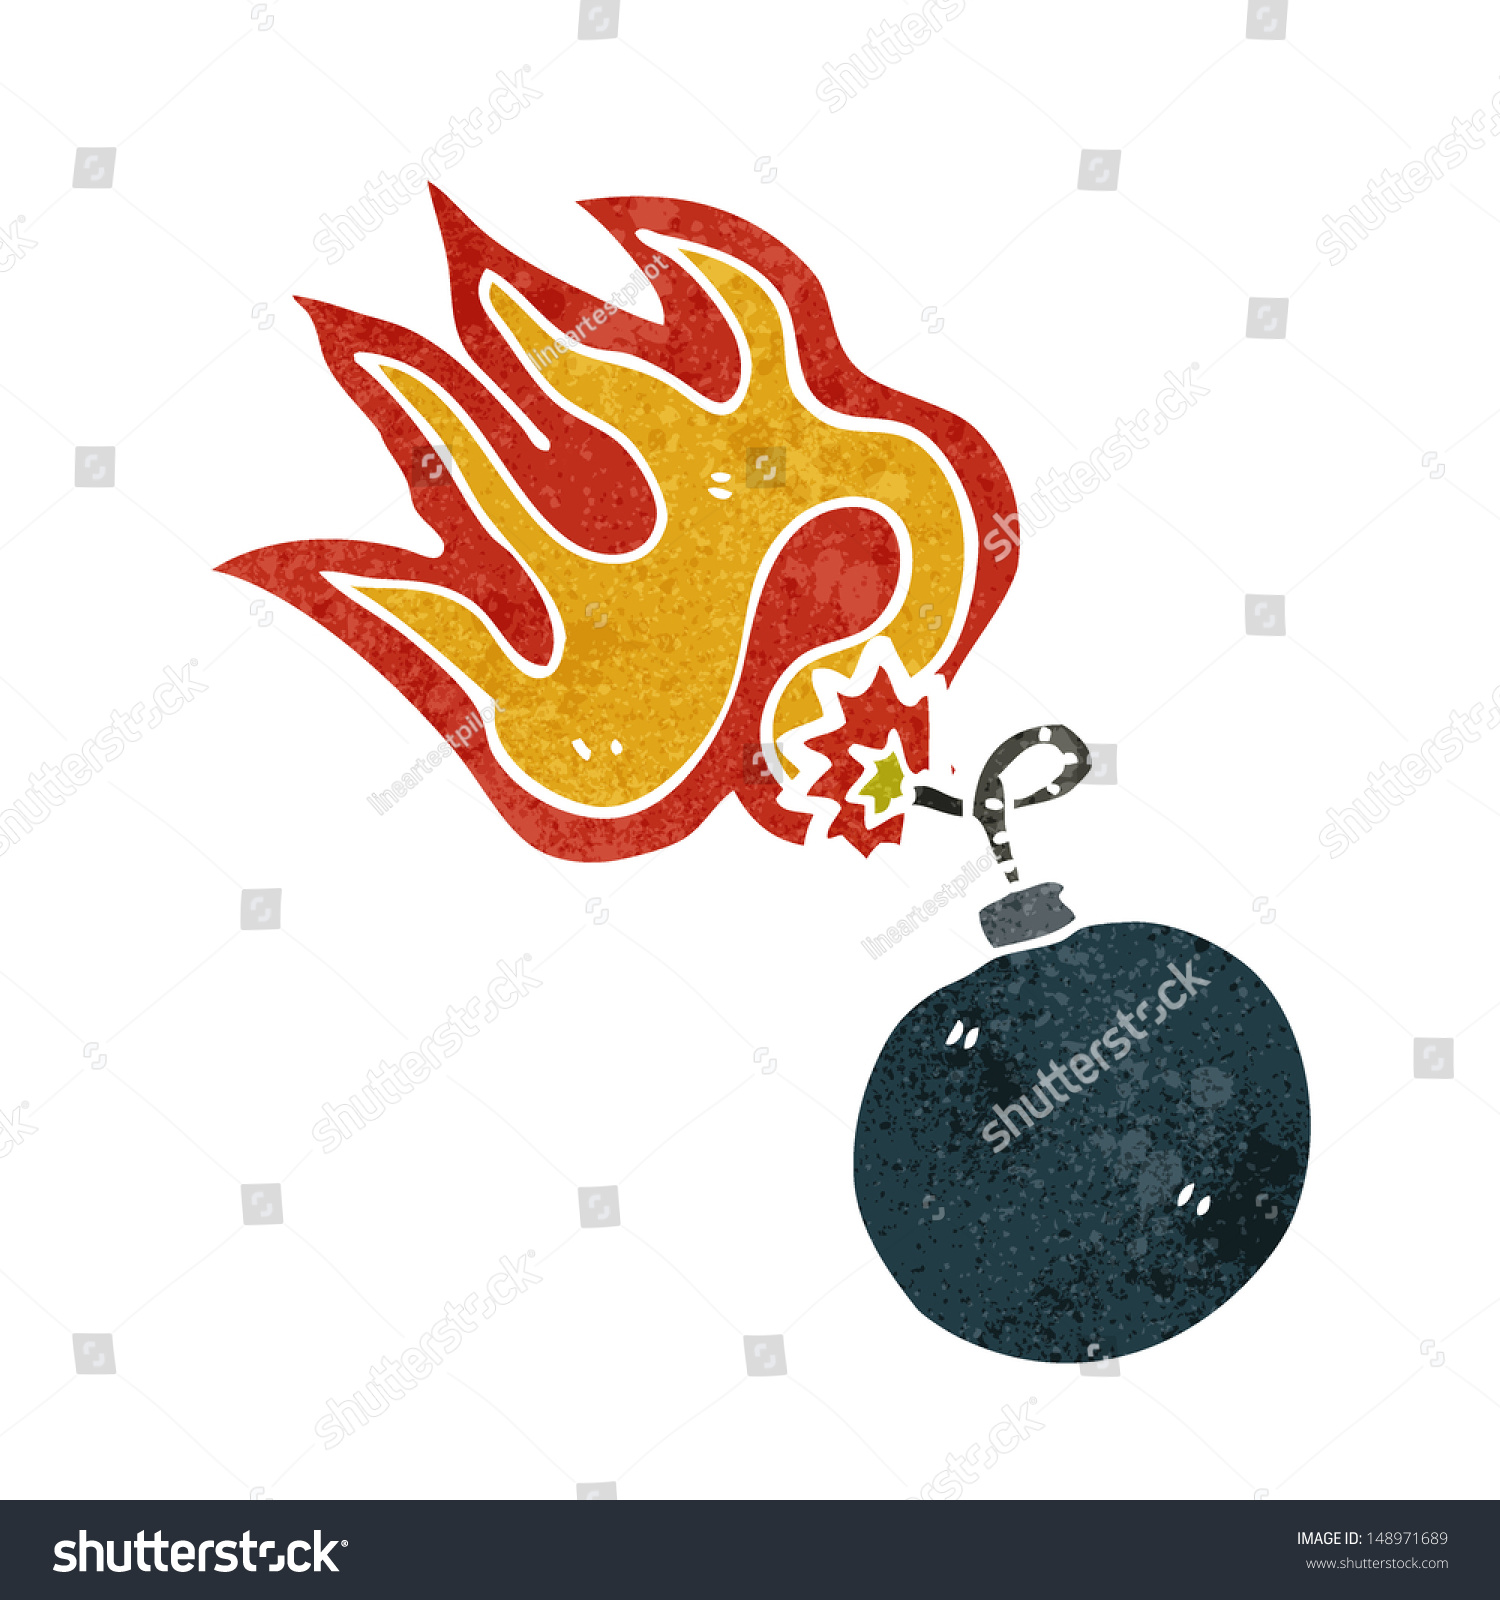 Retro Cartoon Bomb Symbol Burning Fuse Stock Illustration 148971689